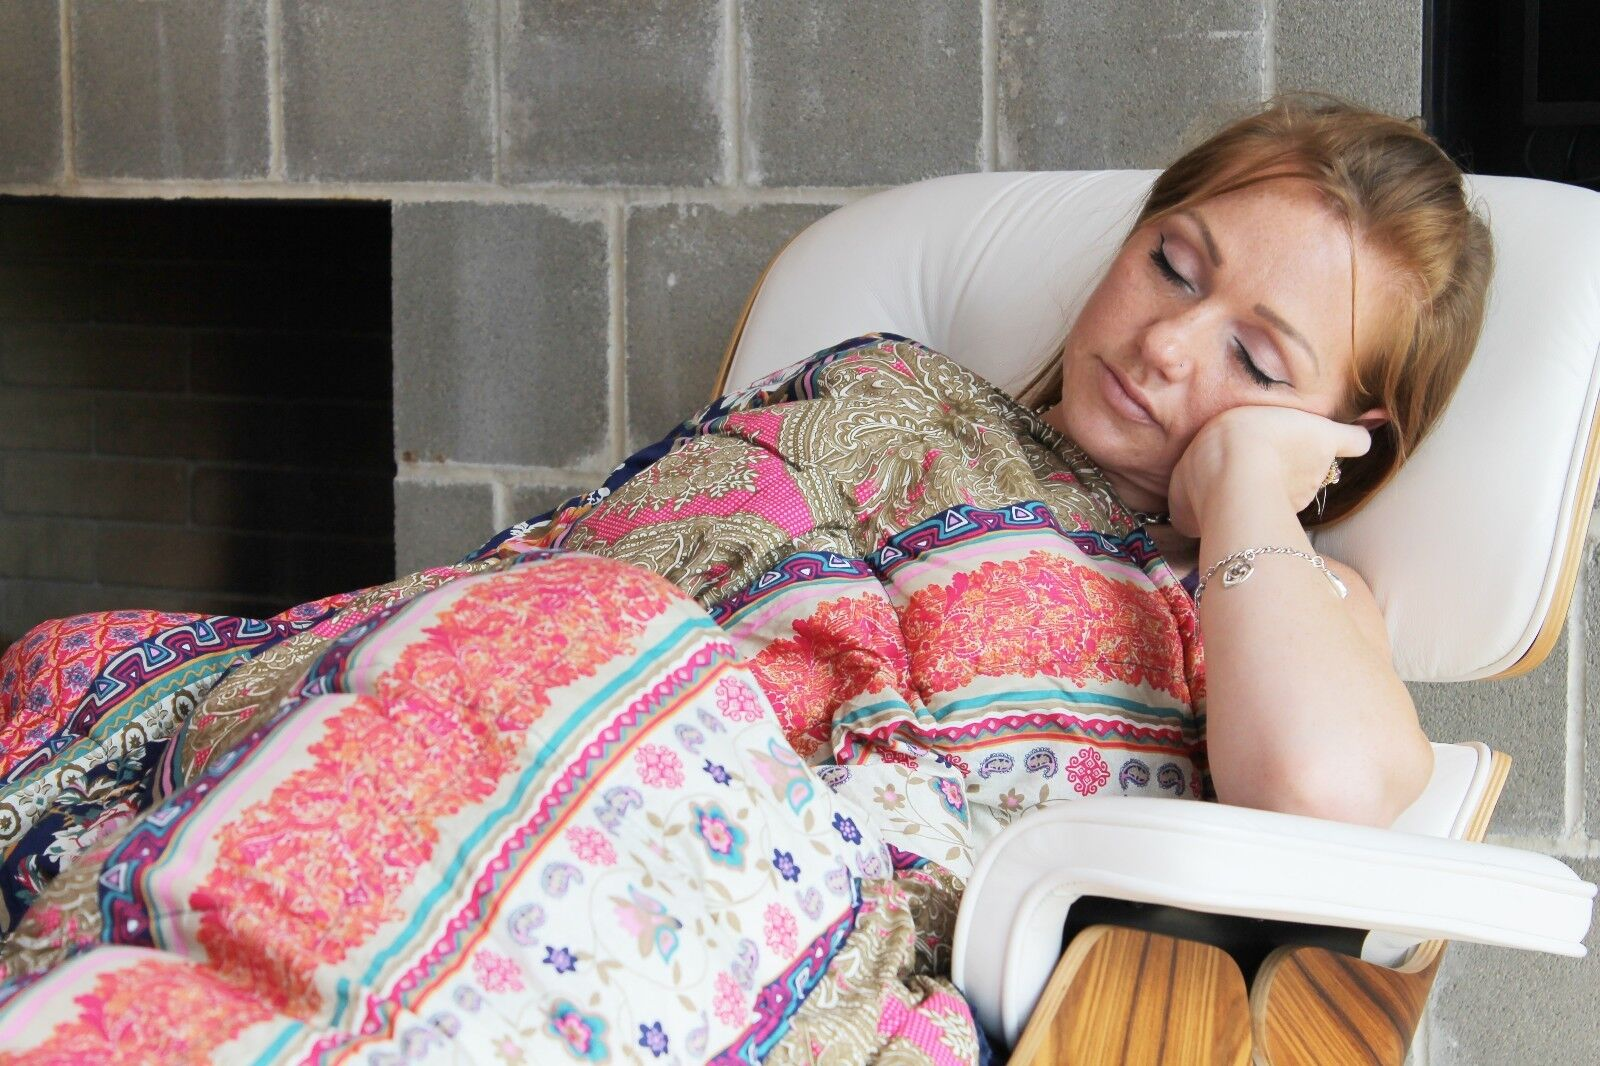 Weighted Blanket  stripe print - Helps to reduce insomnia,Anxiety, Sleep better